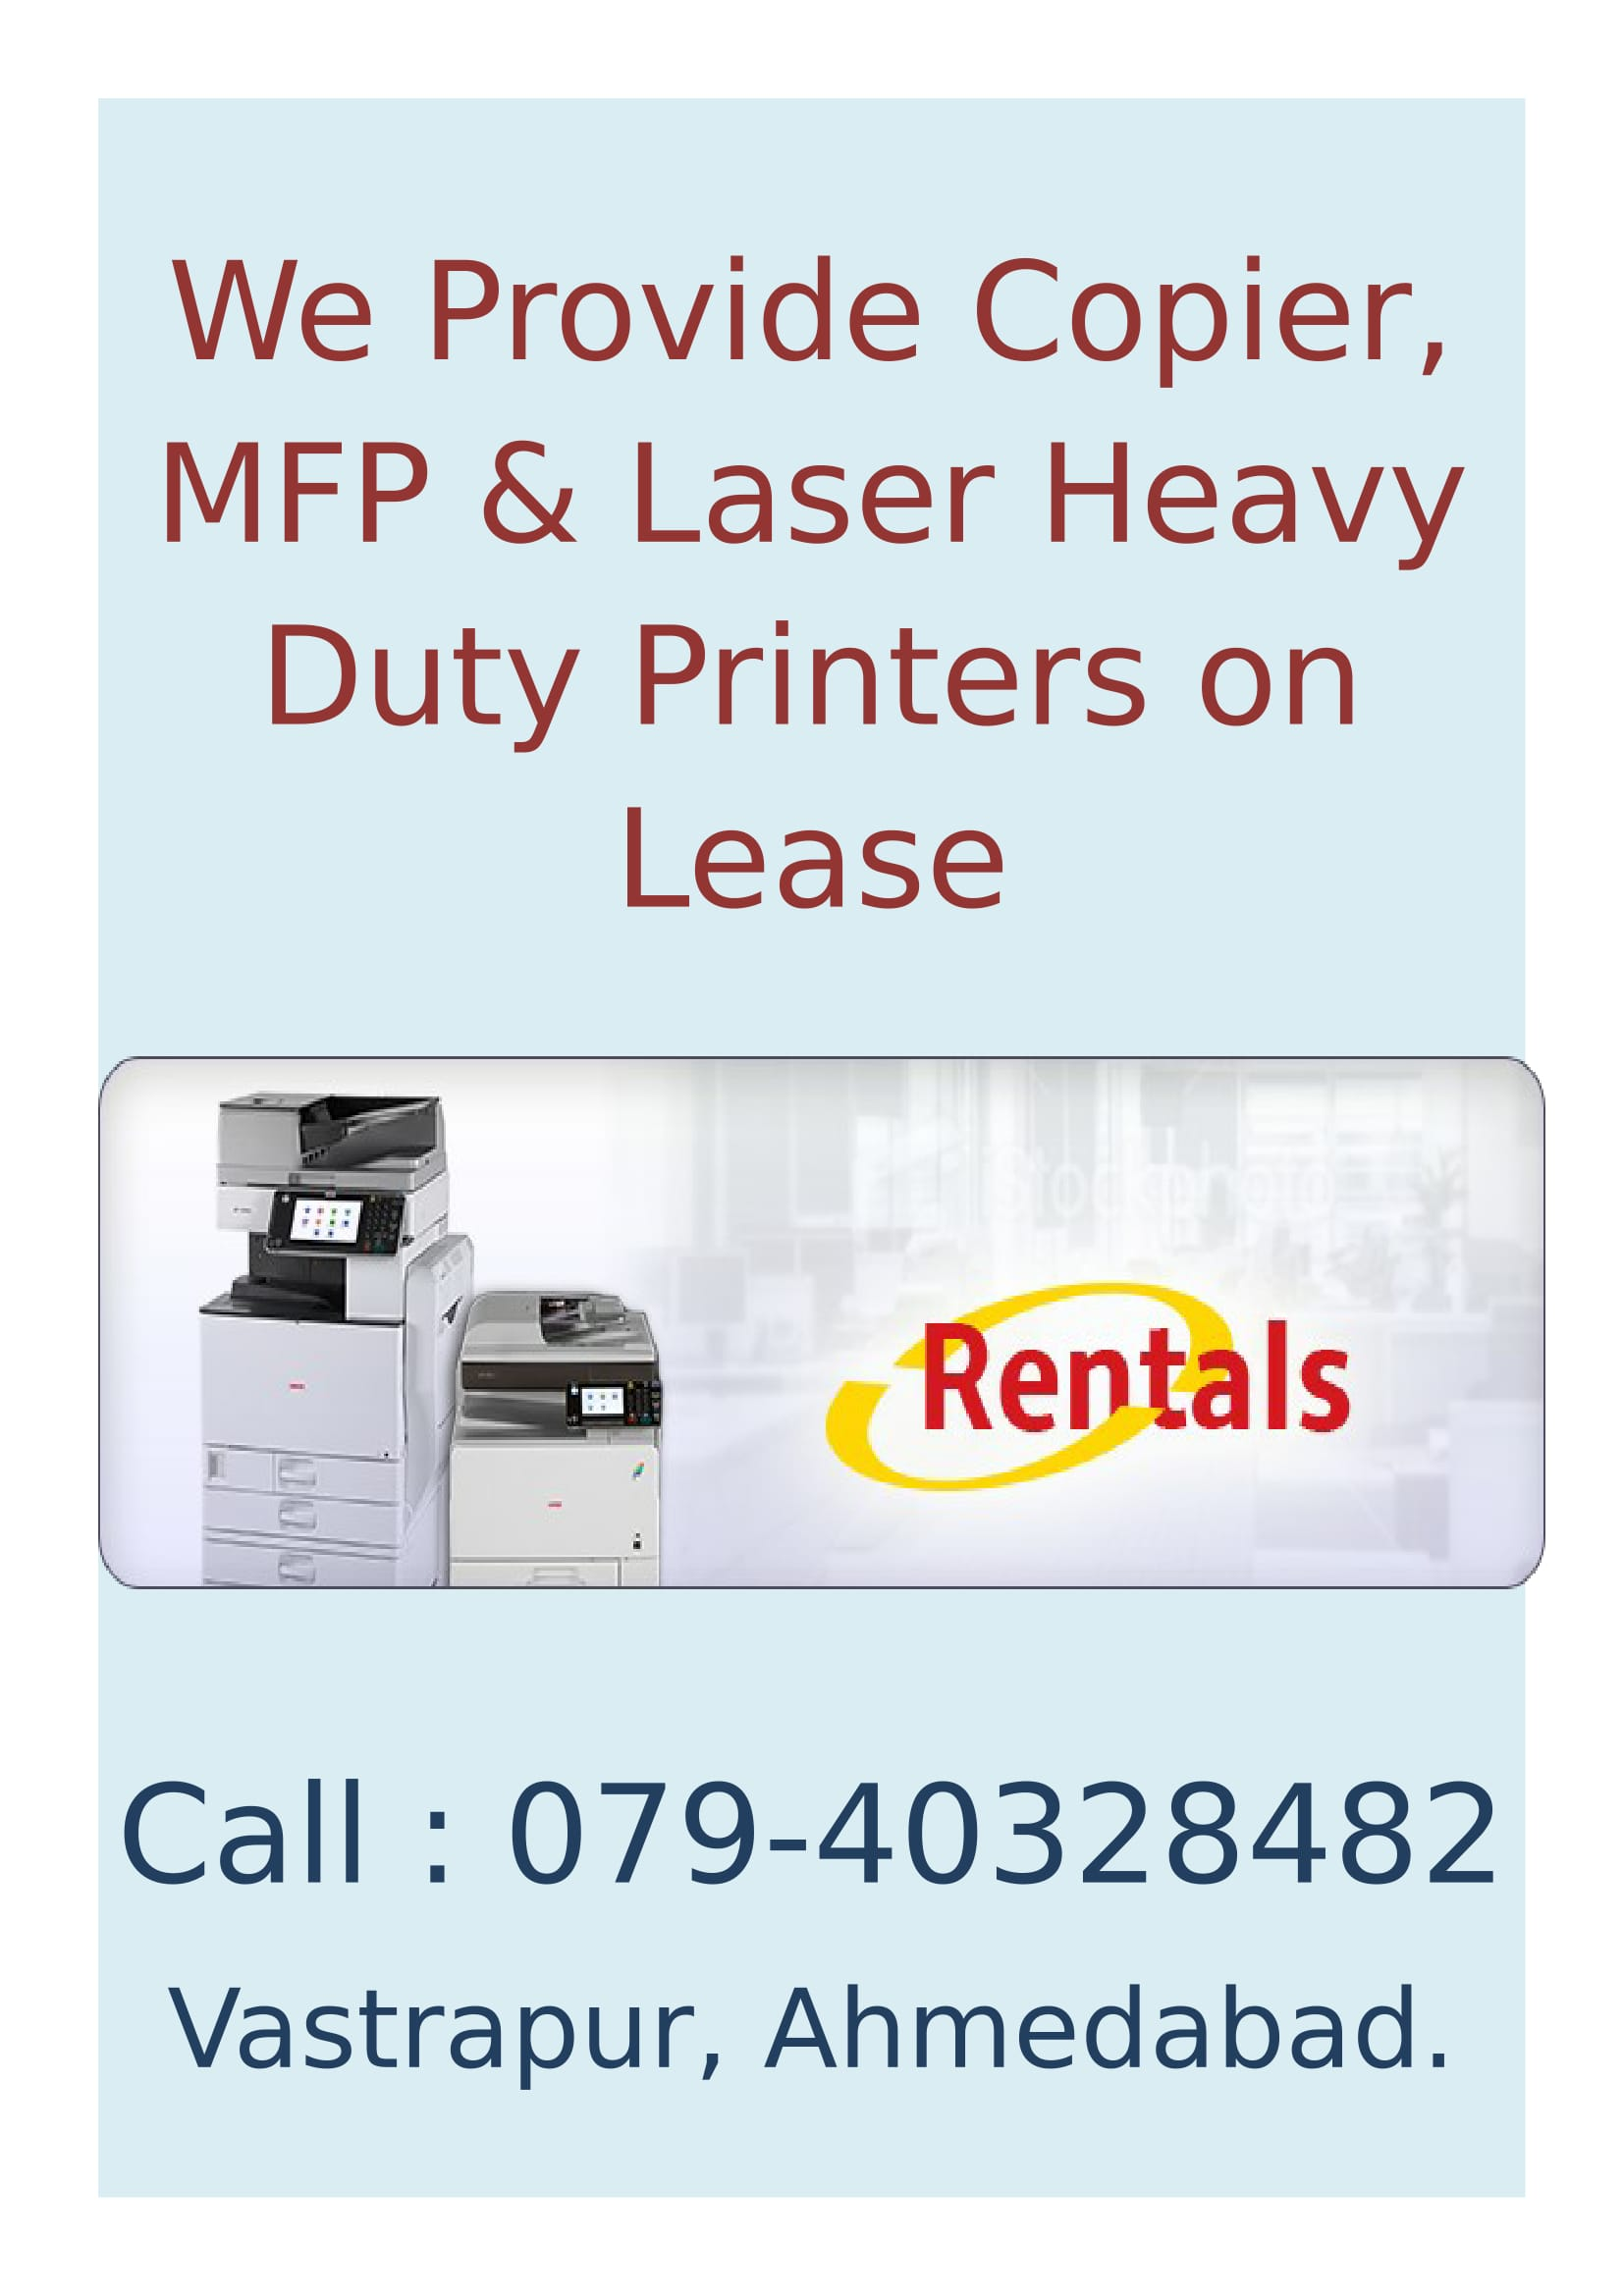 Laser Printer On Hire In Ahmedabad  We Understand The Need Of Businesses Today And Hence We Have Been Providing The Printers On Rent Services To Many Business Segments.  we are providing best services for Laser Printer on Hire From Ahmedabad.  For More Details call now: 079 40328482